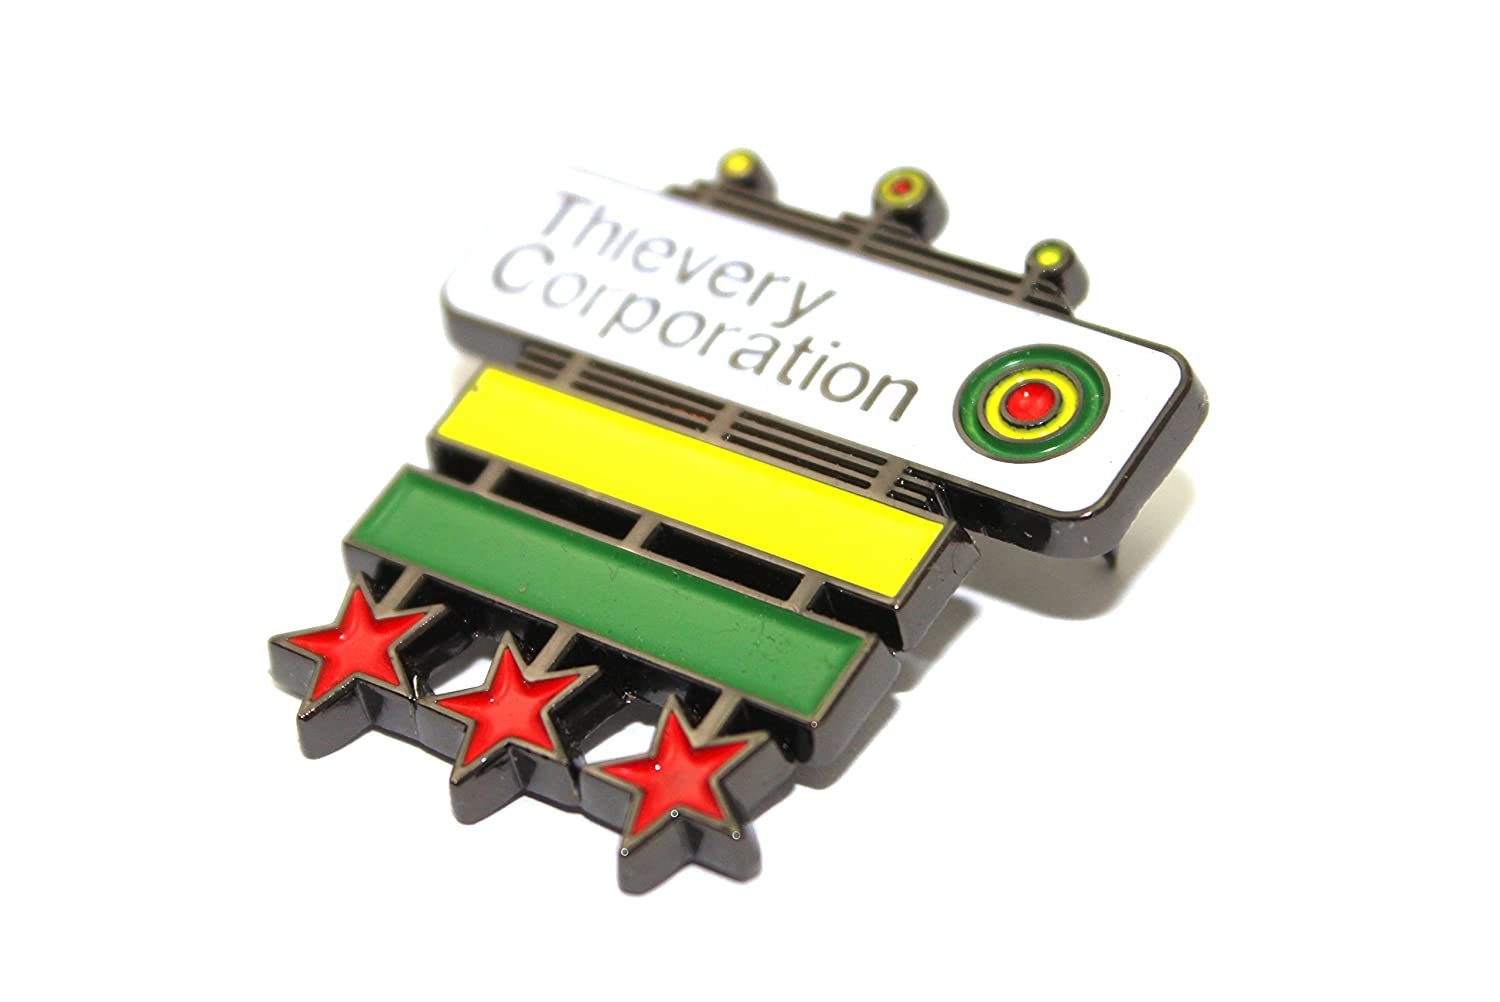 The Official Thievery Corporation 'Master General' Pin Sloth Steady